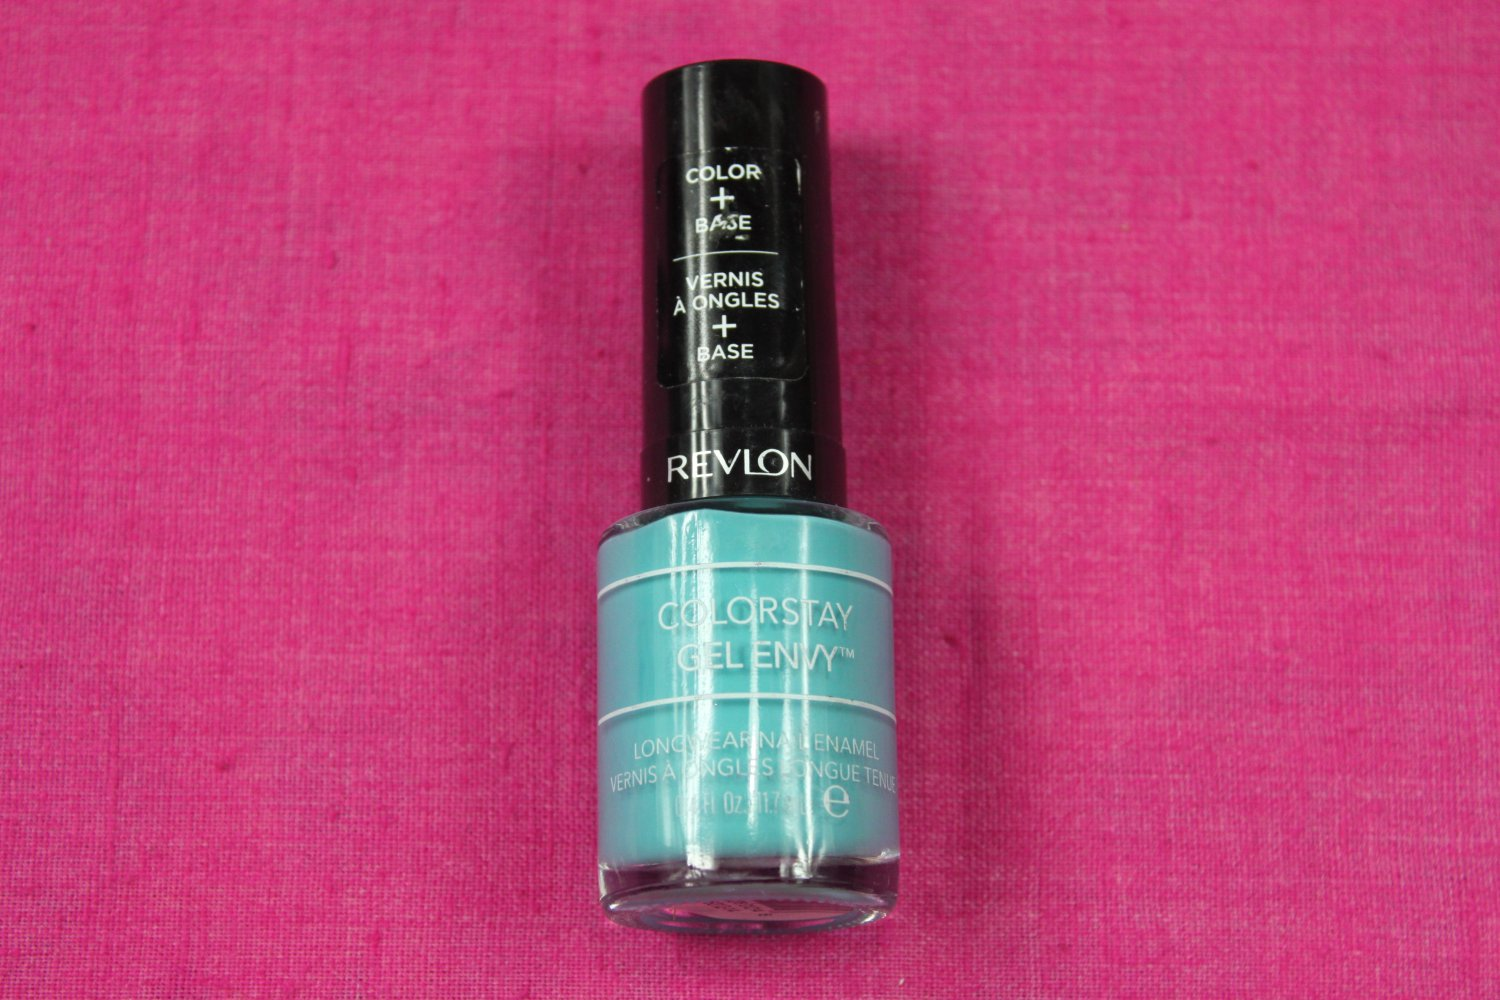 Revlon Colorstay Gel Envy Nail Enamel #320 FULL HOUSE Nail Polish